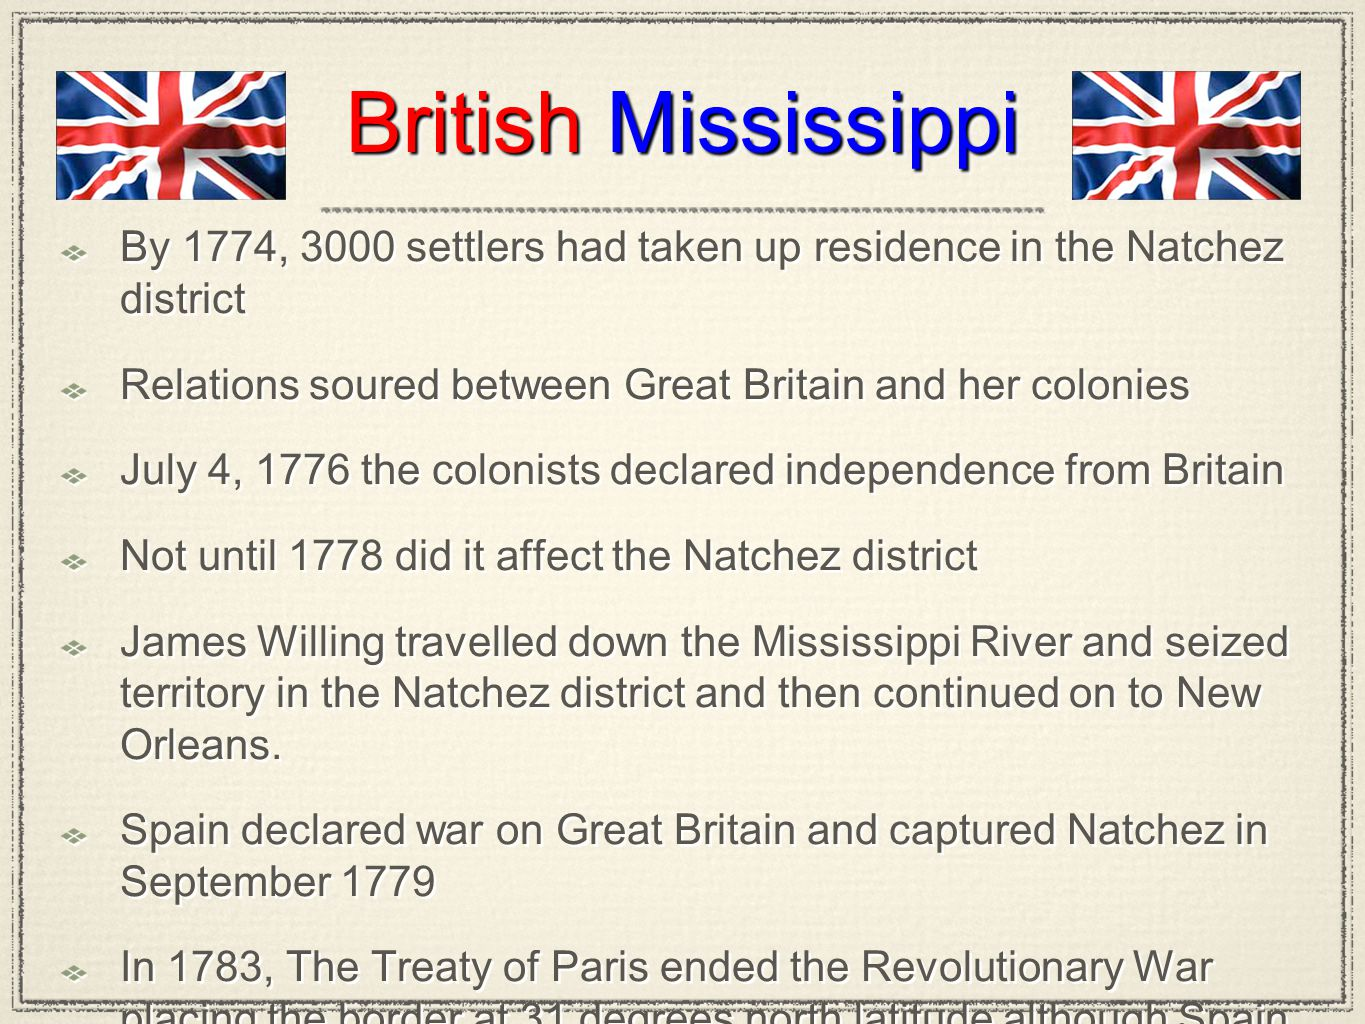 British Mississippi By 1774, 3000 settlers had taken up residence in the Natchez district Relations soured between Great Britain and her colonies July